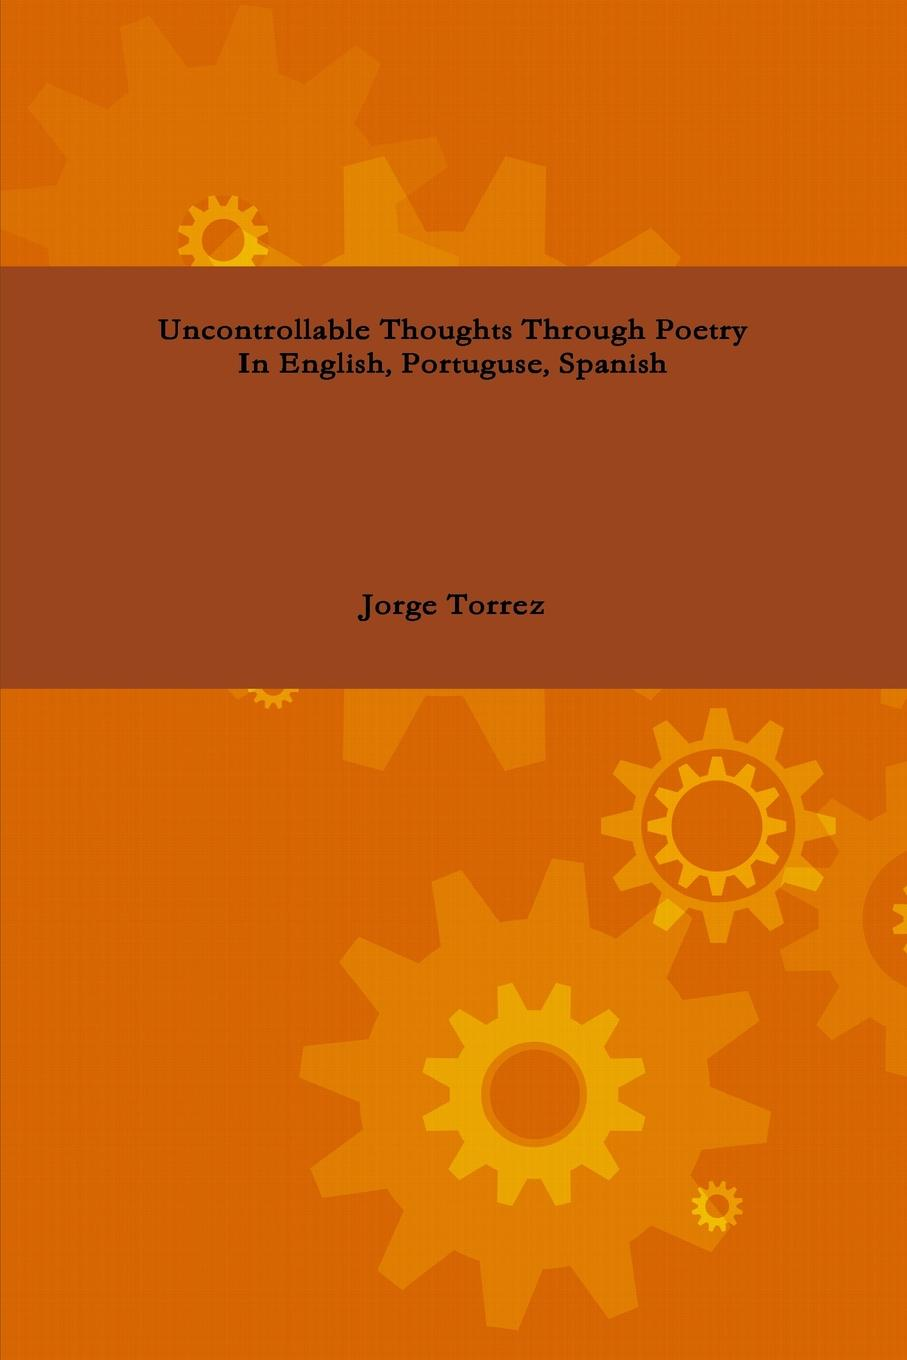 Jorge Torrez Uncontrollable Thoughts Through Poetry In English, Portuguese, Spanish i is for innocent